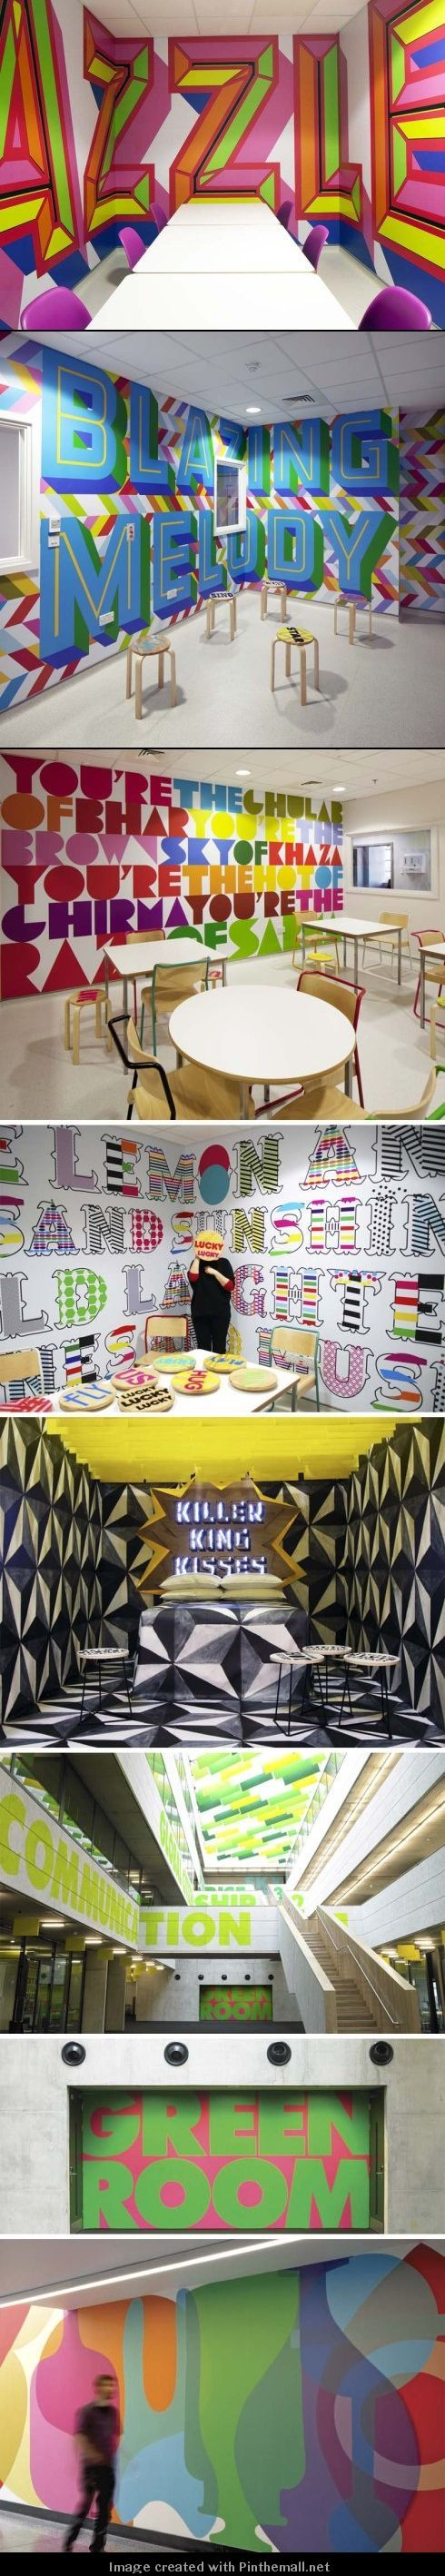 English designer Morag Myerscough creates environmental graphics combining a great sense of color with a great sense of typography www.vinylimpression.co.uk: